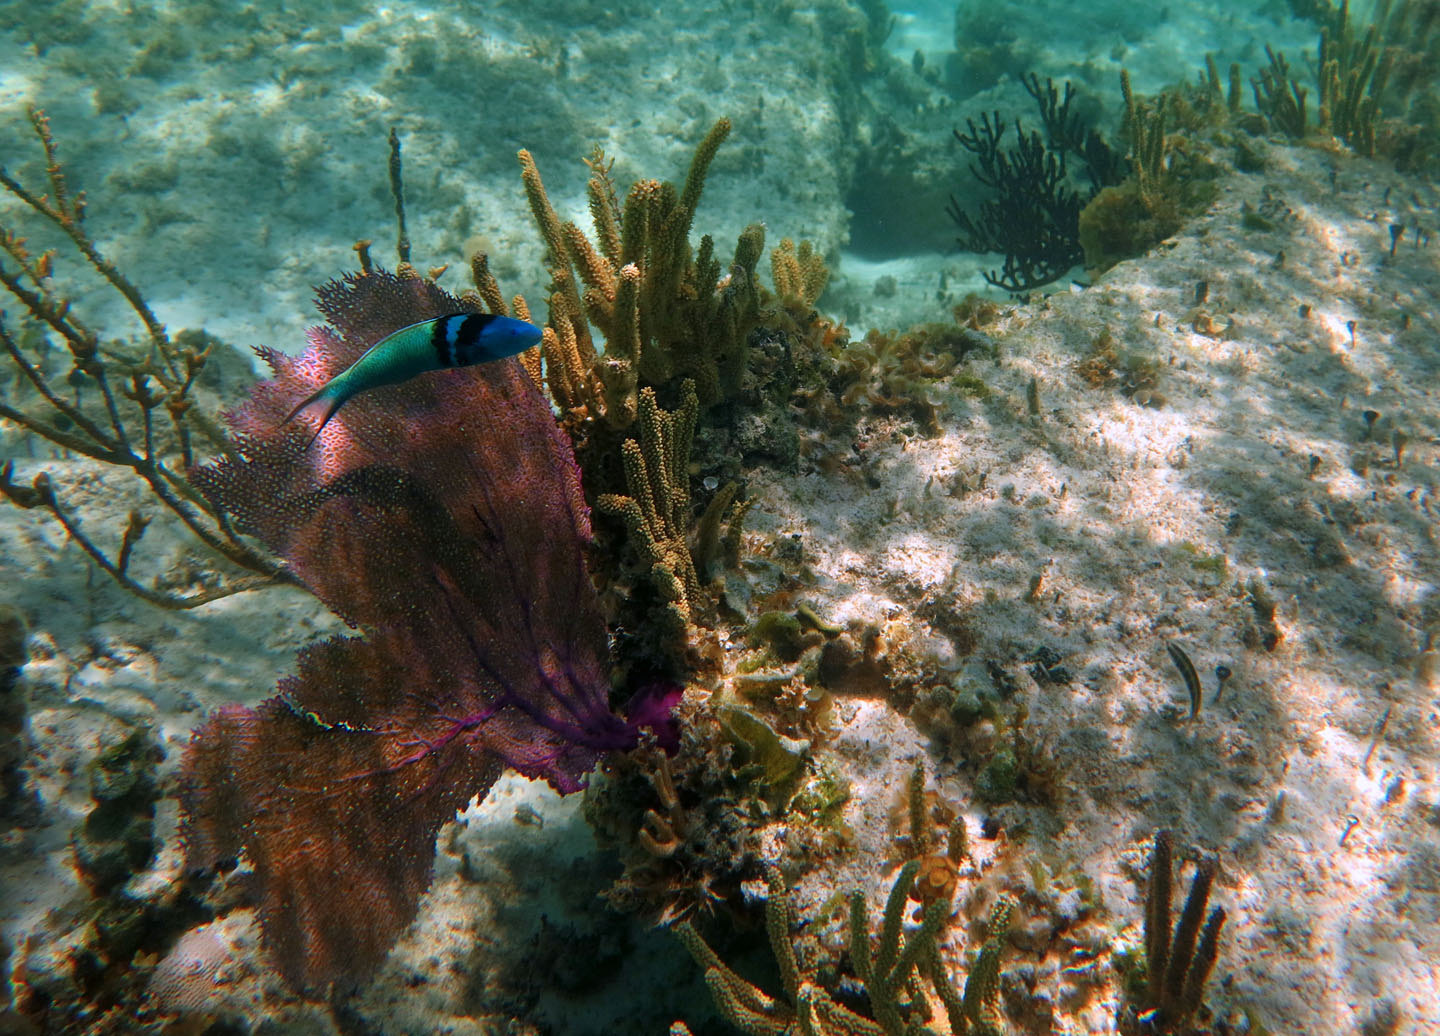 bahamas, abaco, green turtle cay, underwater, fish